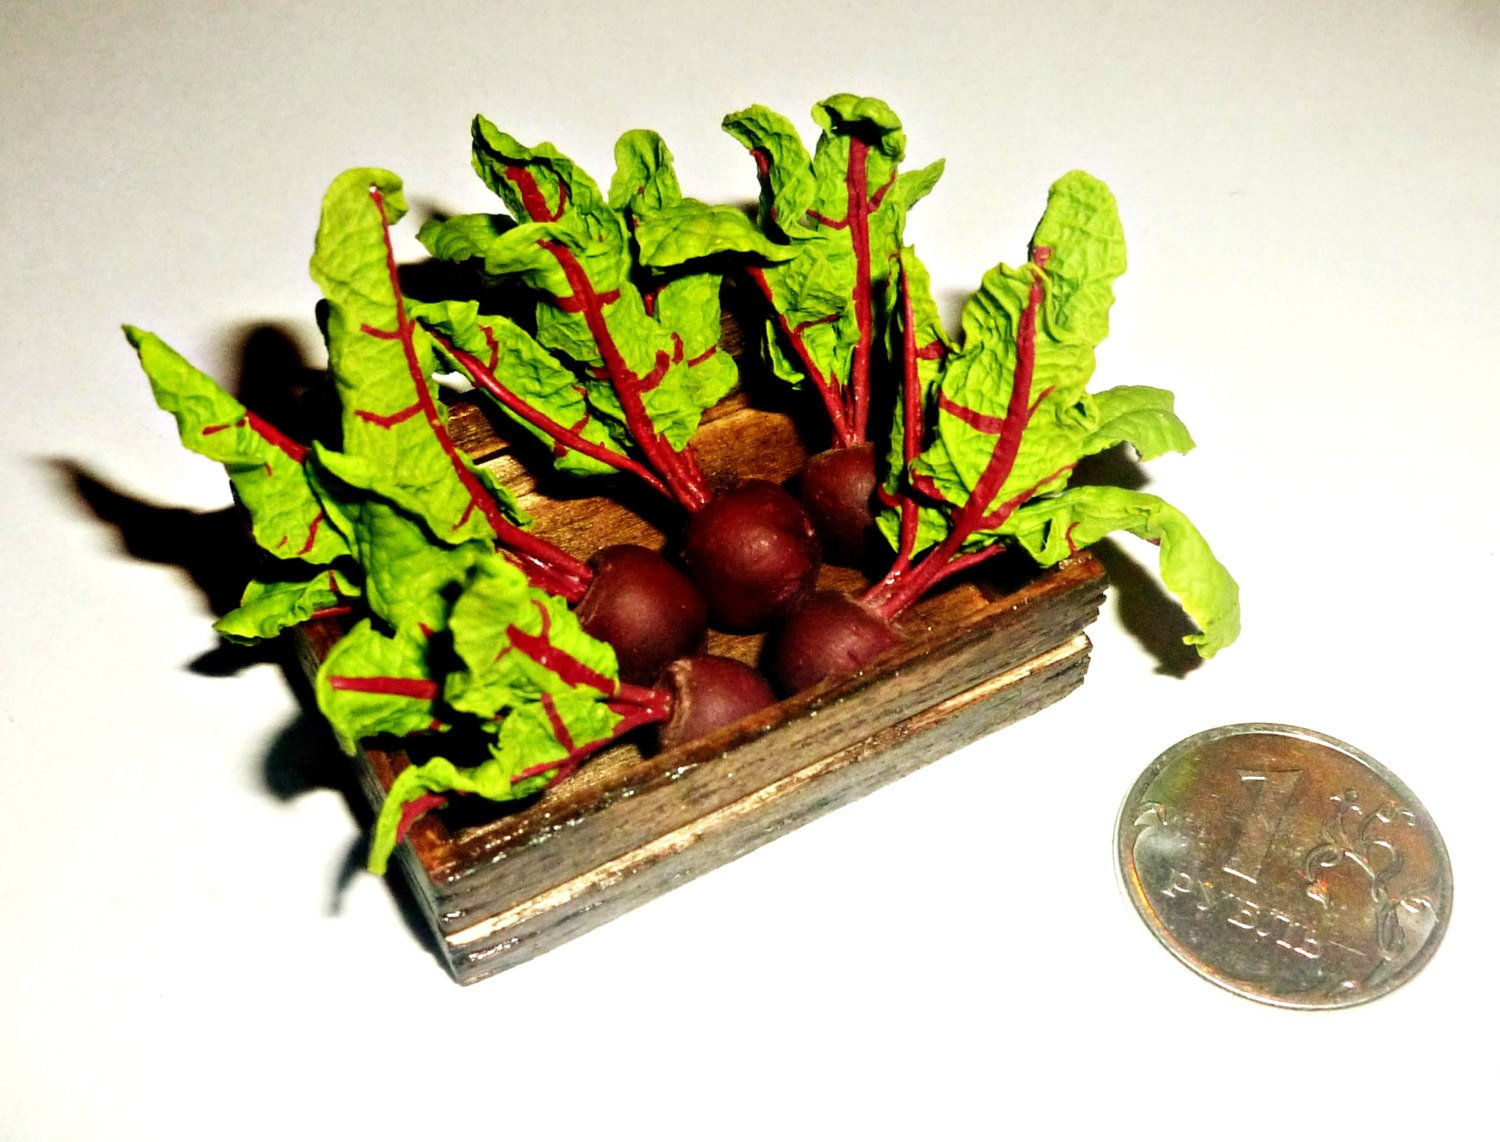 beets Carrots The vegetables for the garden Vegetables in the baskets and boxes radishes Dollhouse miniature 1:12